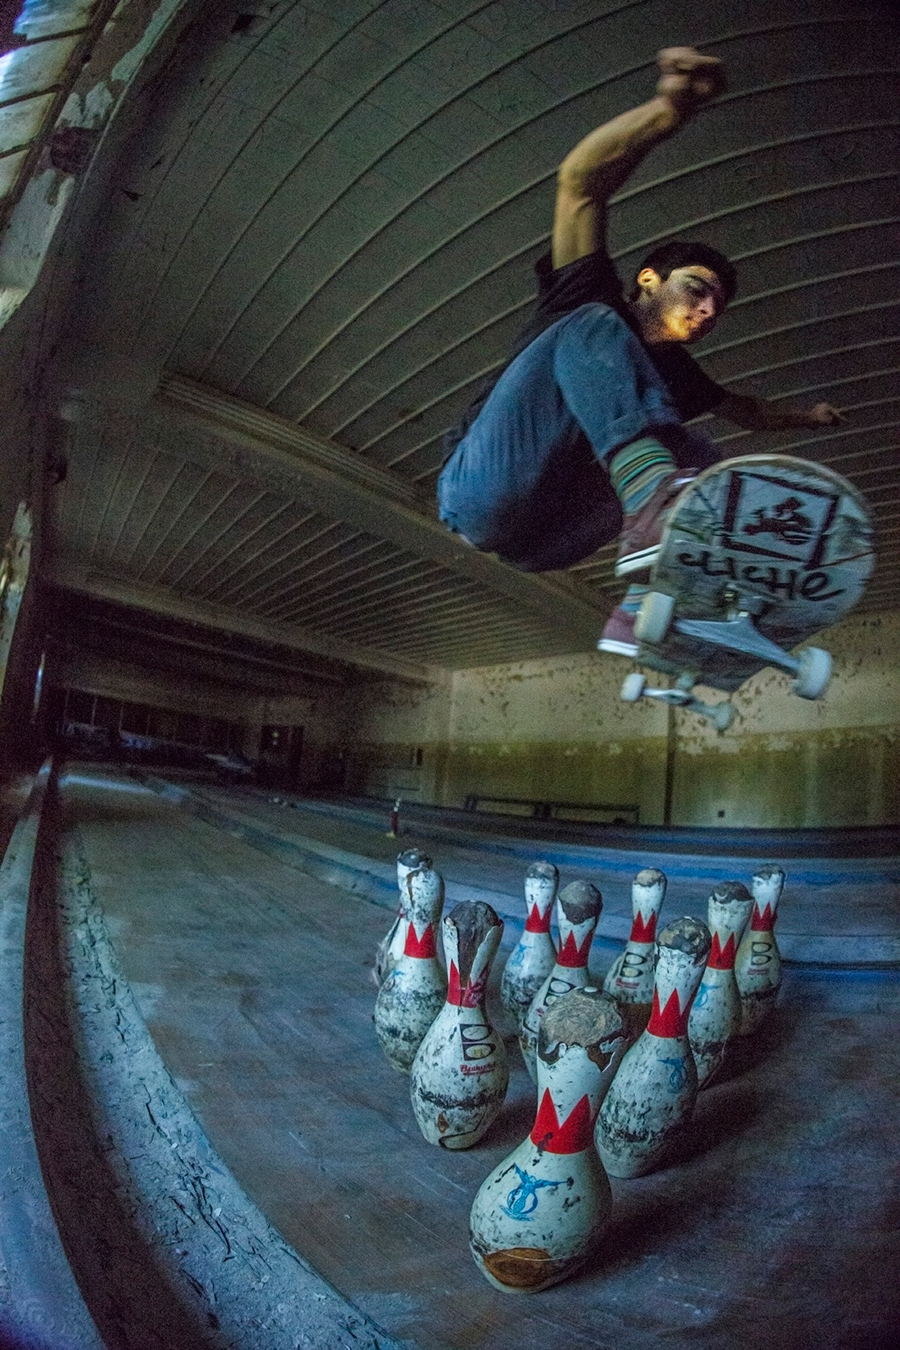 Skating through an Abandoned Psych Ward (with a Hidden Bowling Alley)